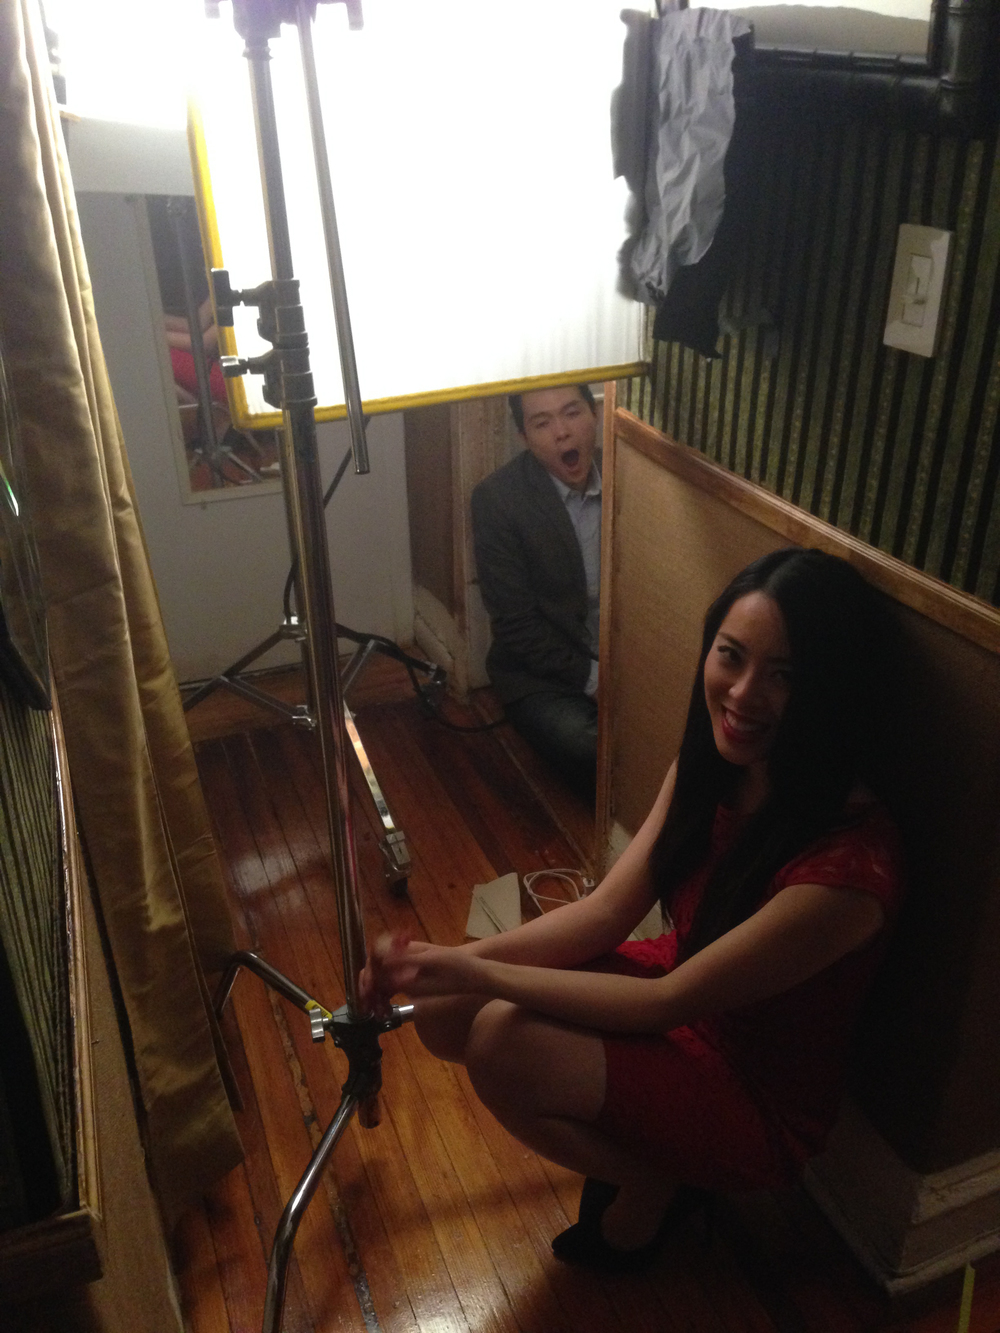 Actress Charis Chu (Julianne) shows that she's a pro, still smiling on set at 4 am waiting for her scene.